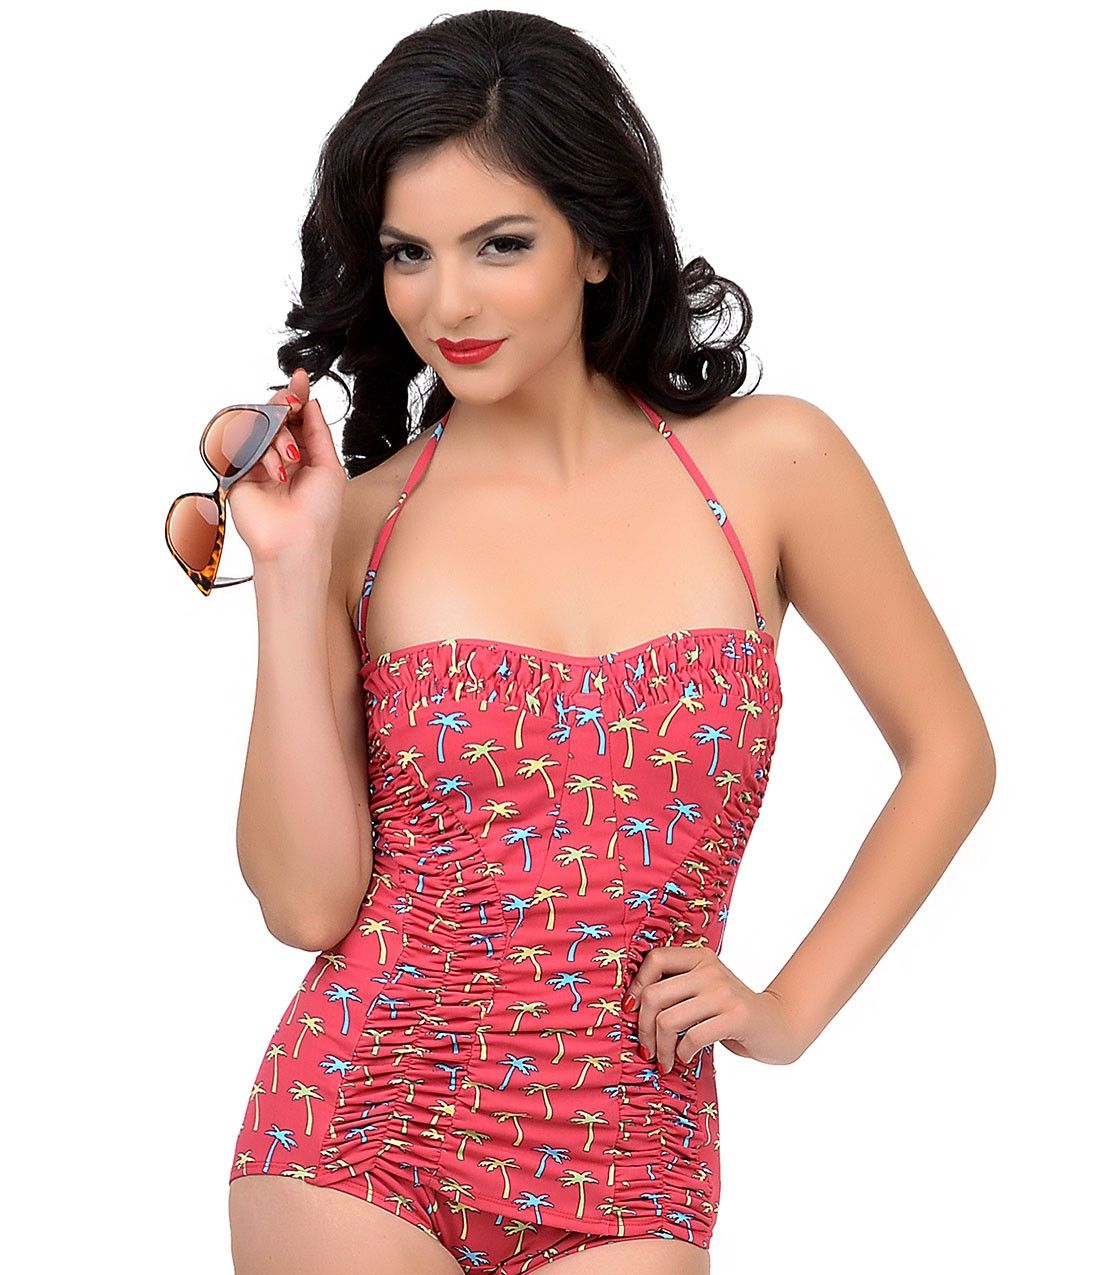 Pin-up in a subtle vintage inspired one piece sheath swimsuit from Esther Williams